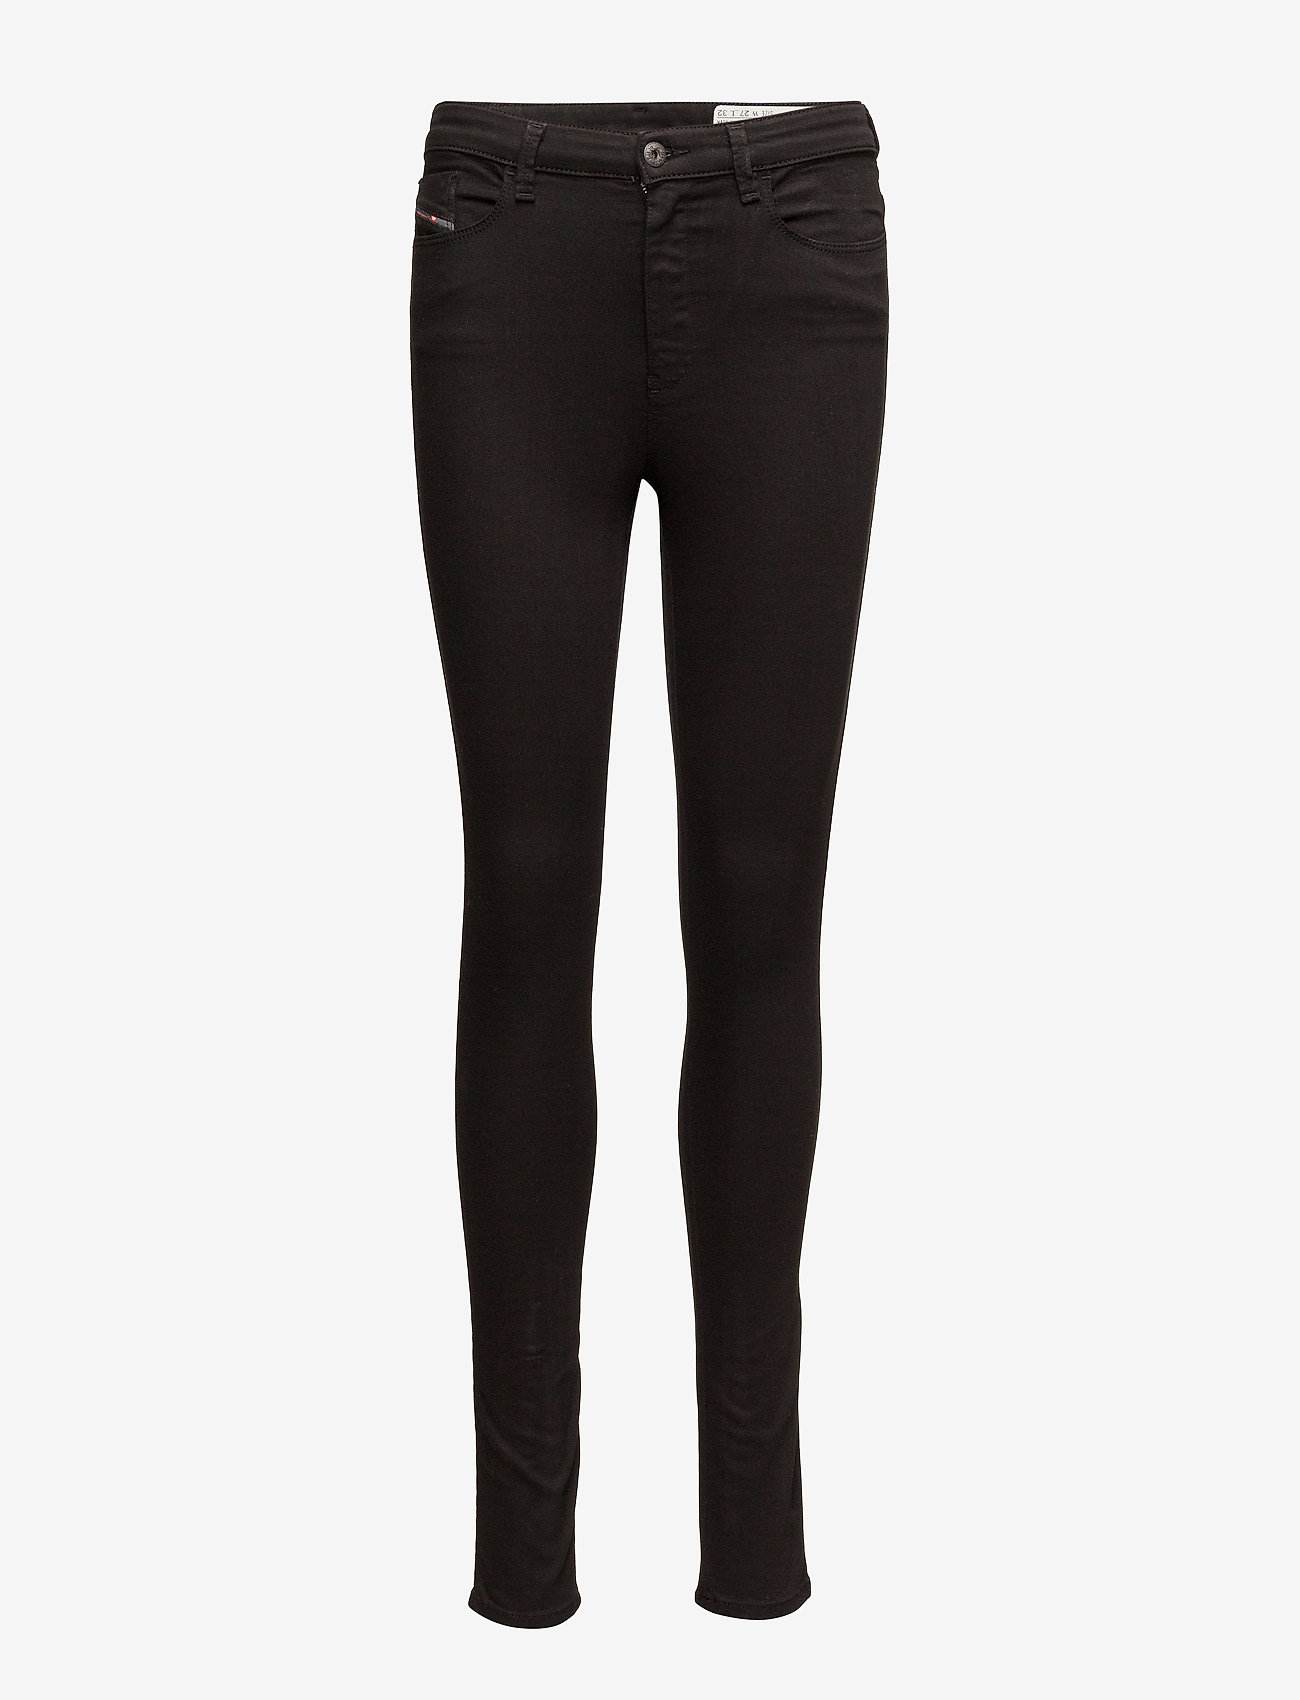 Diesel Women - SKINZEE-HIGH TROUSERS - skinny jeans - black/denim - 0